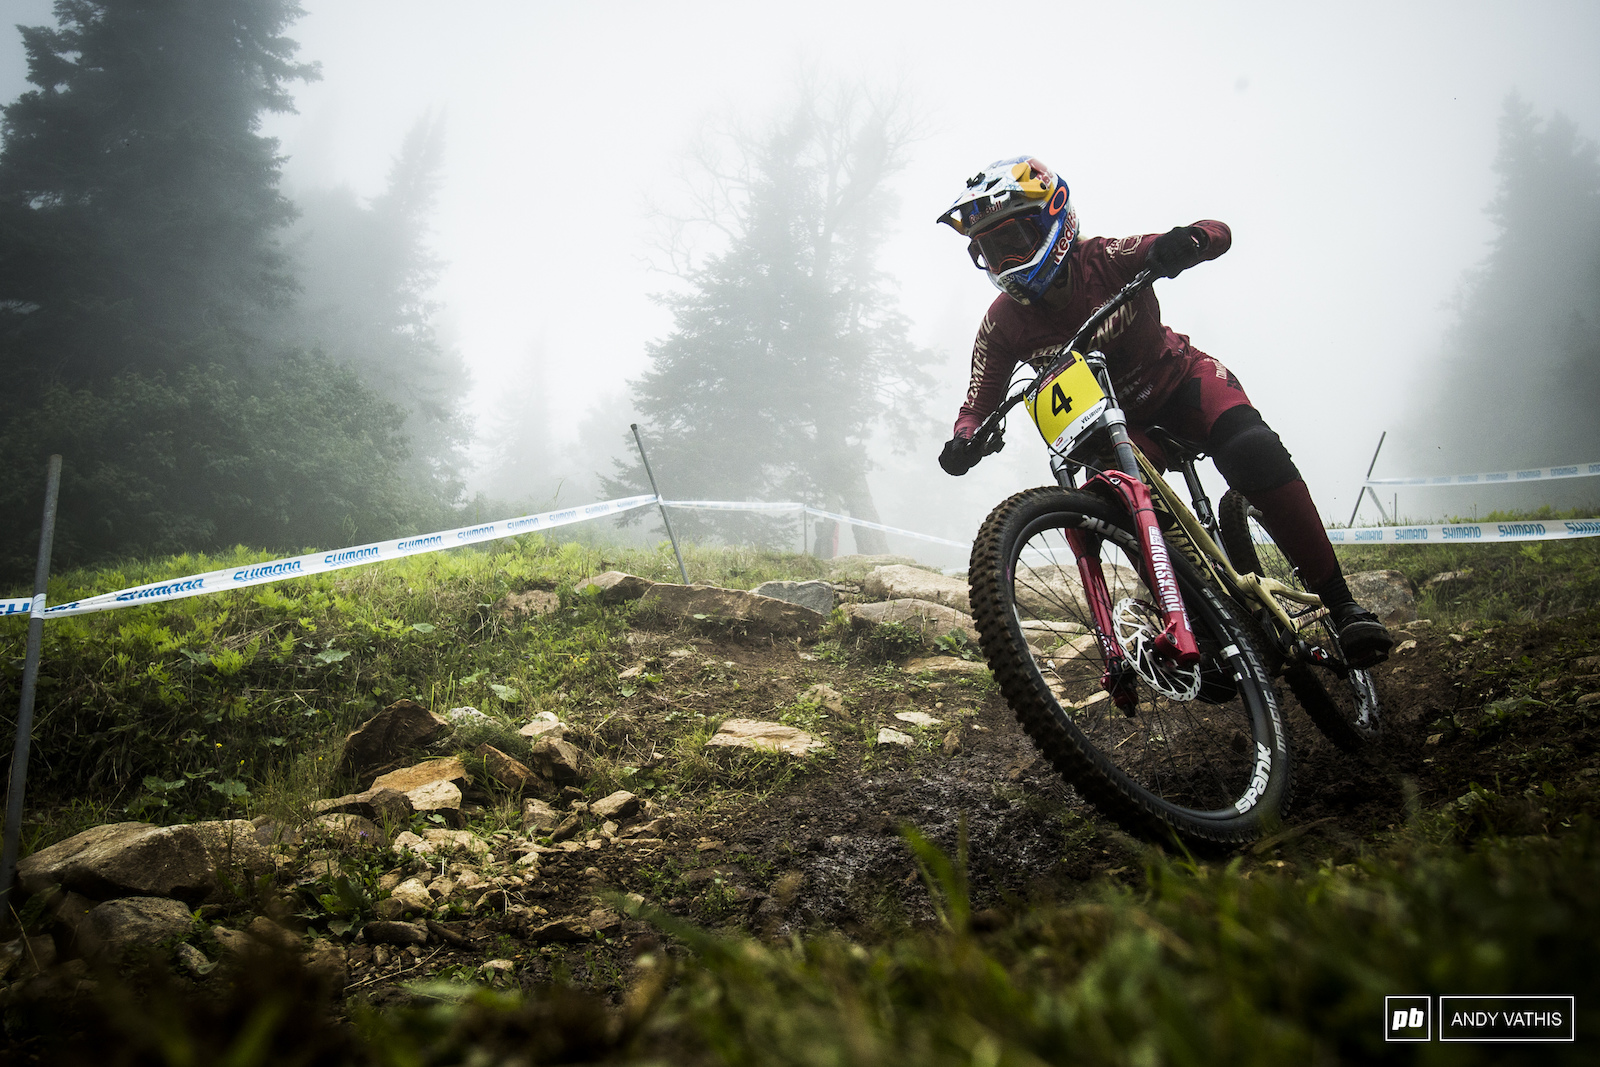 Myriam Nicole peering through the clouds back on two wheels.